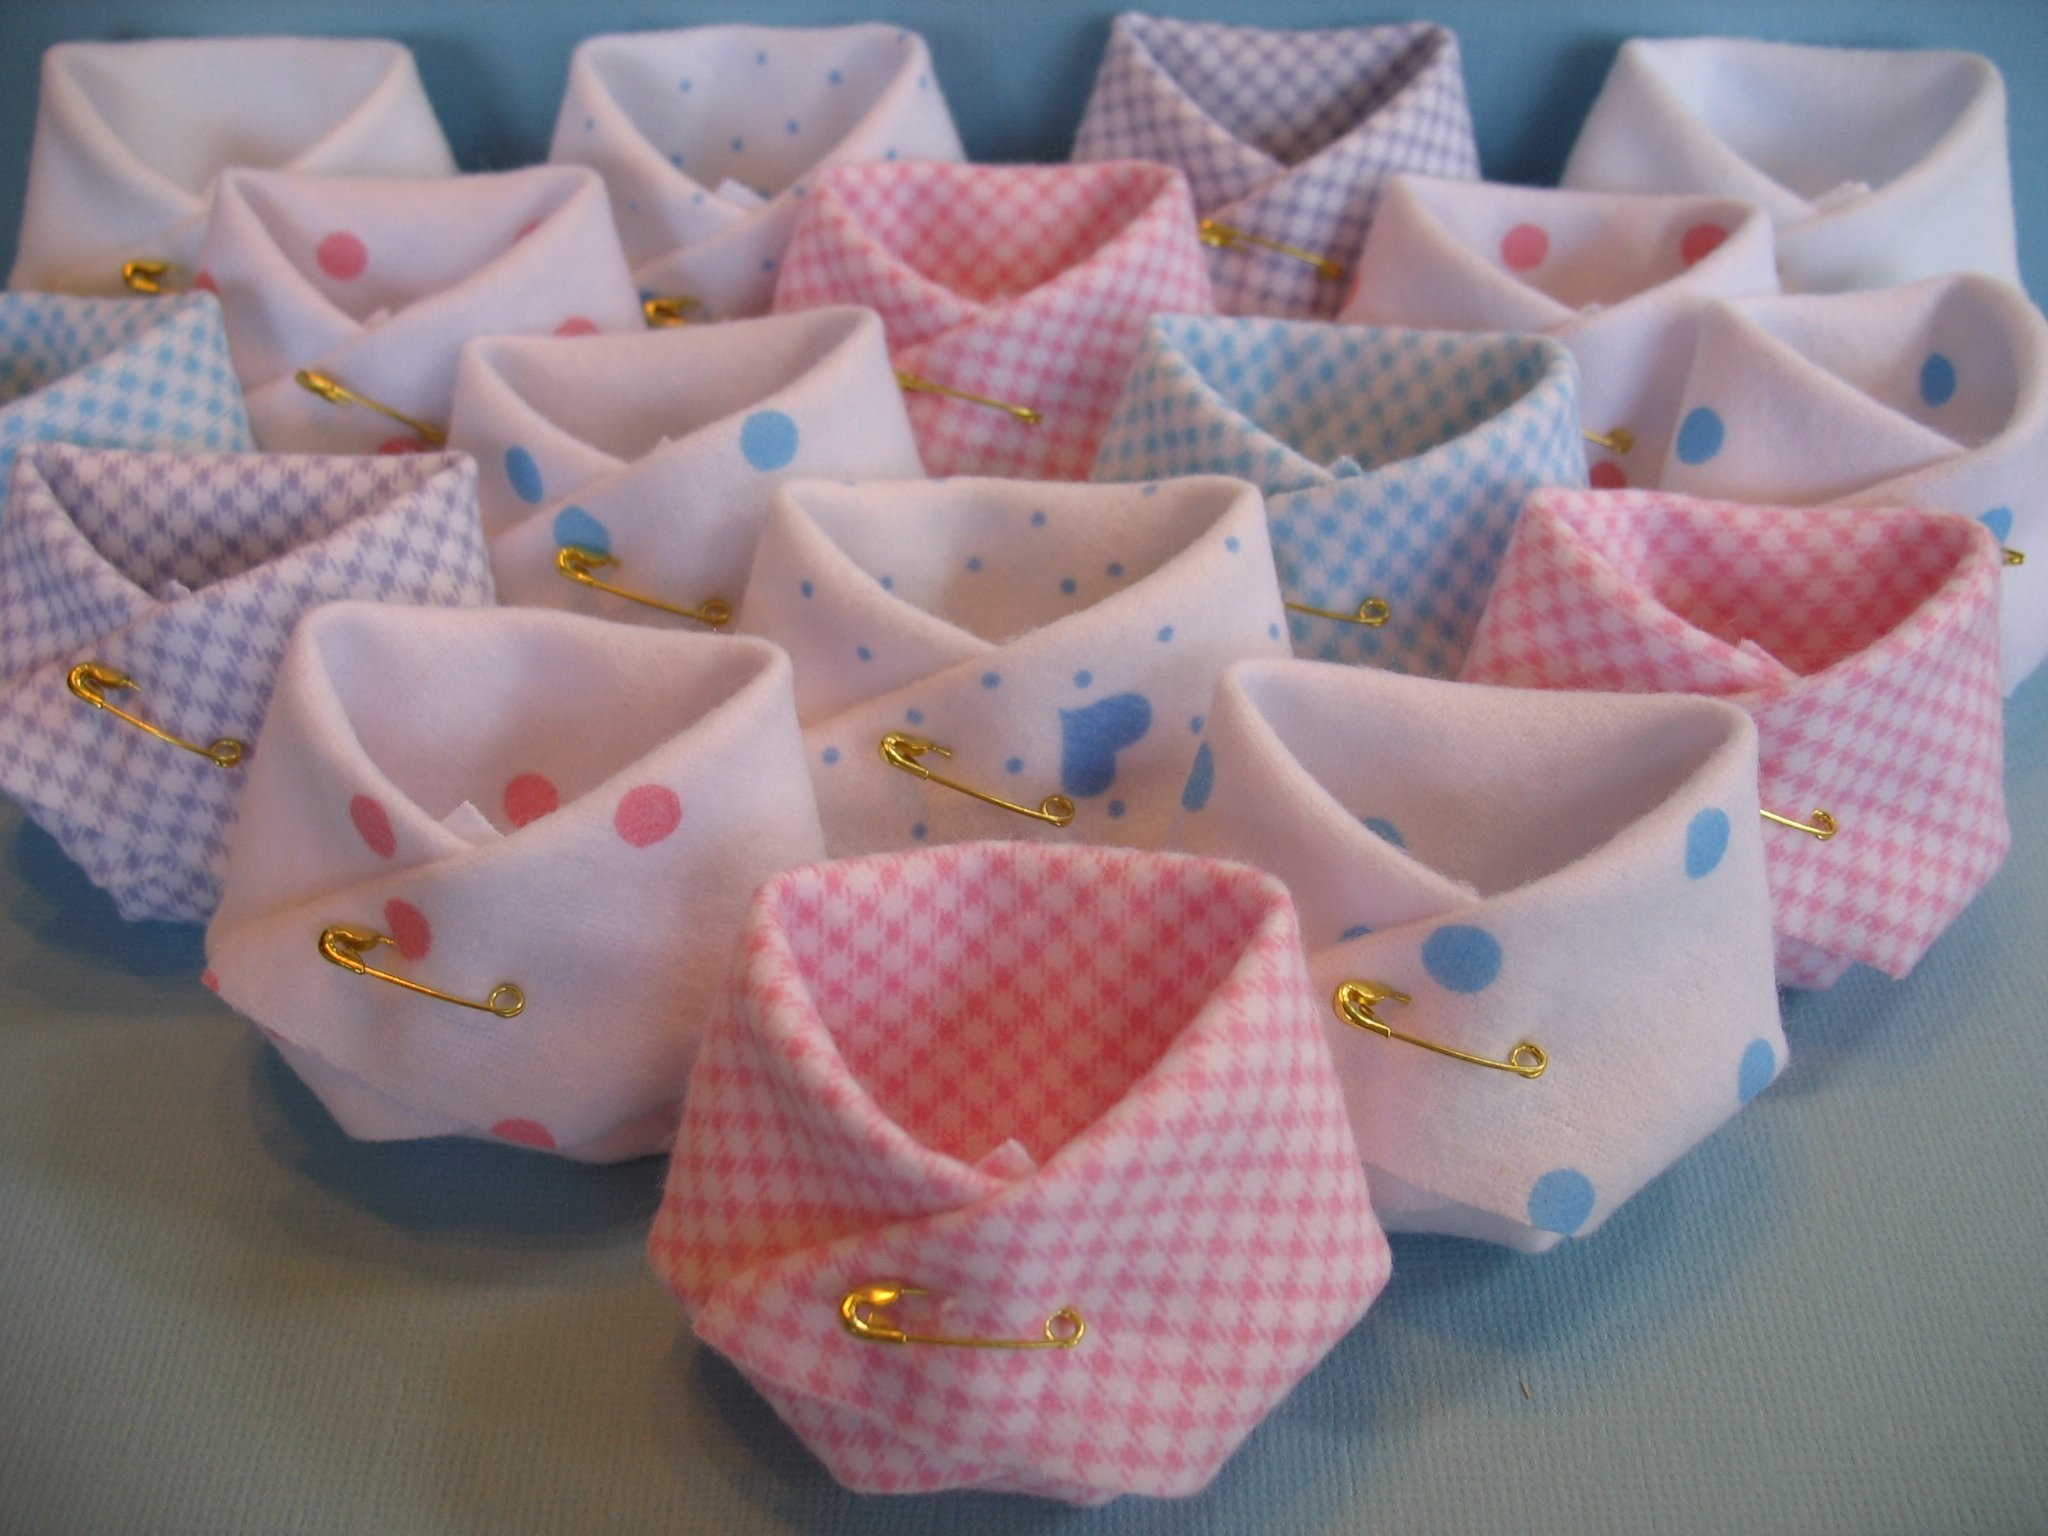 10 Famous Ideas For Baby Shower Favors ideas phenomenal baby shower favor to make yourself dsc 0612 party 2020